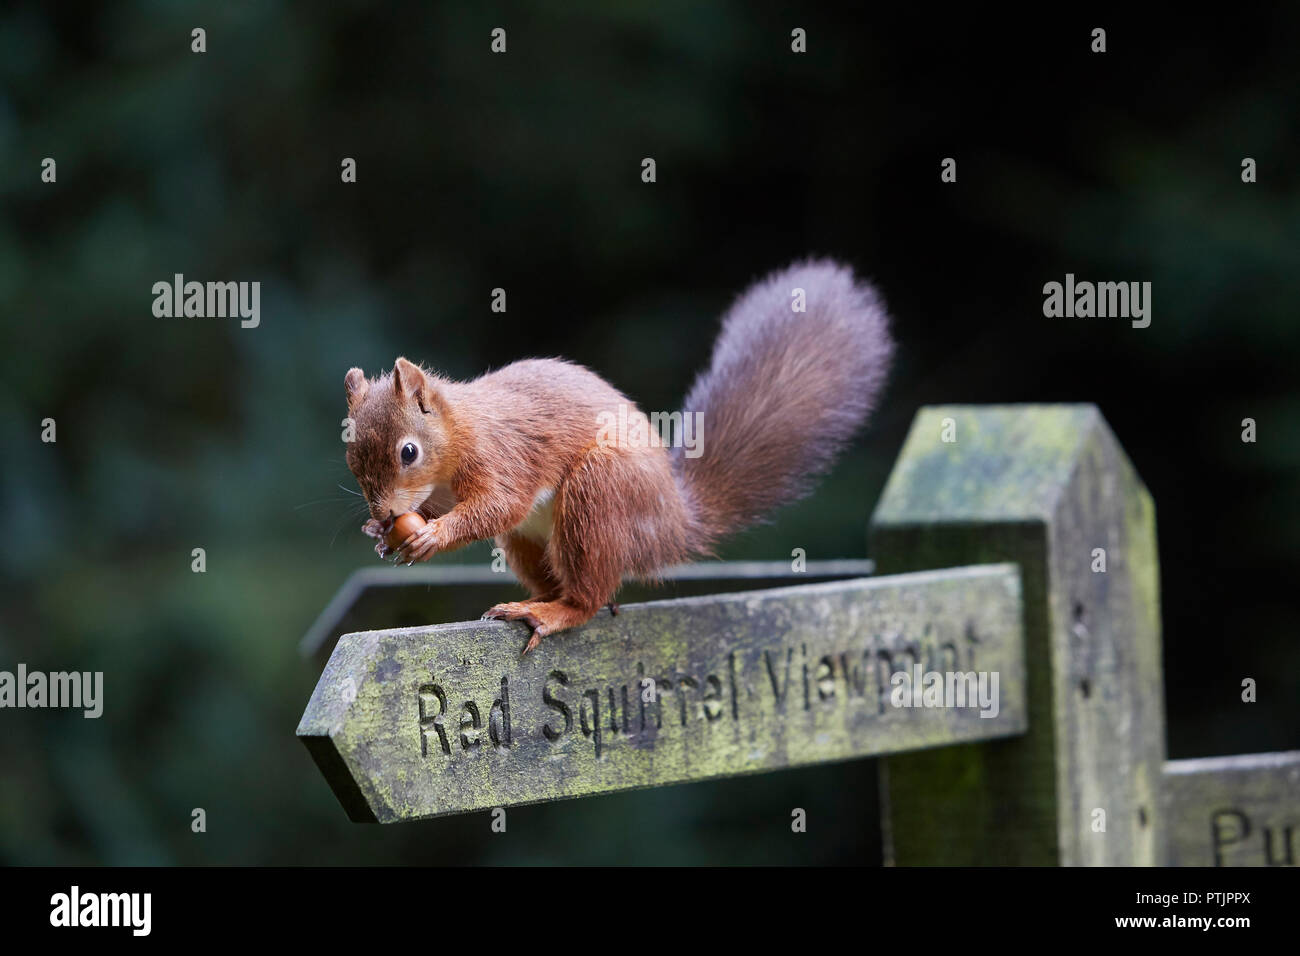 Red Squirrel, Sciurus vulgaris, eating a hazelnut on a Red Squirrel viewpoint public footpath sign post, Snaizeholme, near Hawes, Yorkshire Dales Nati - Stock Image